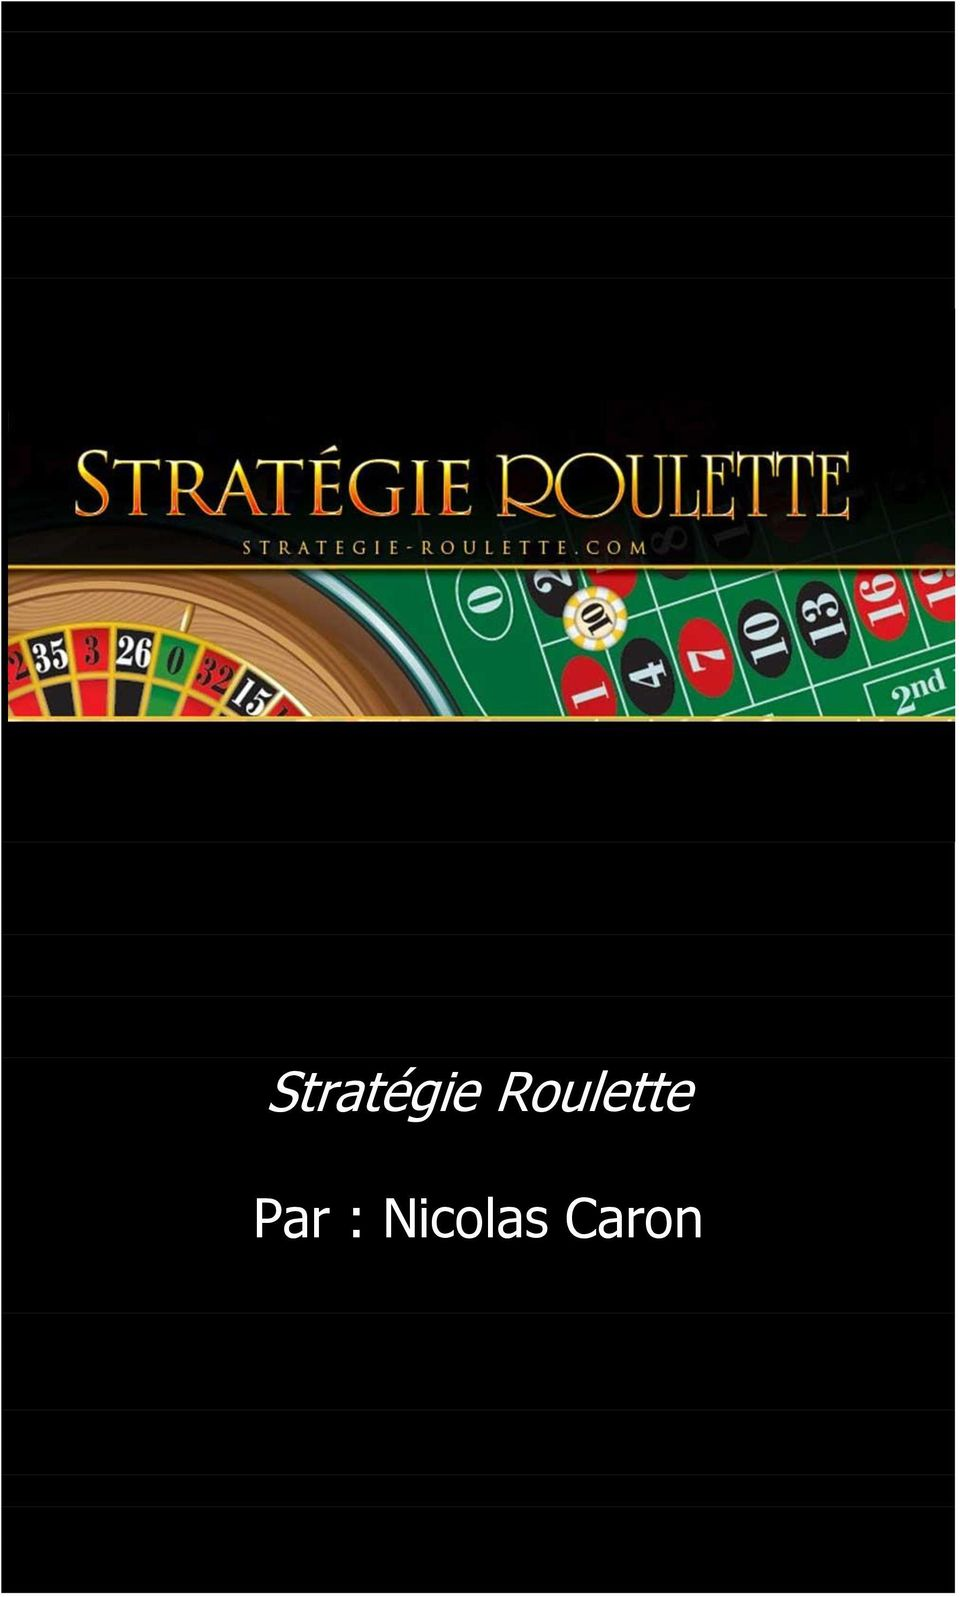 strategie roulette